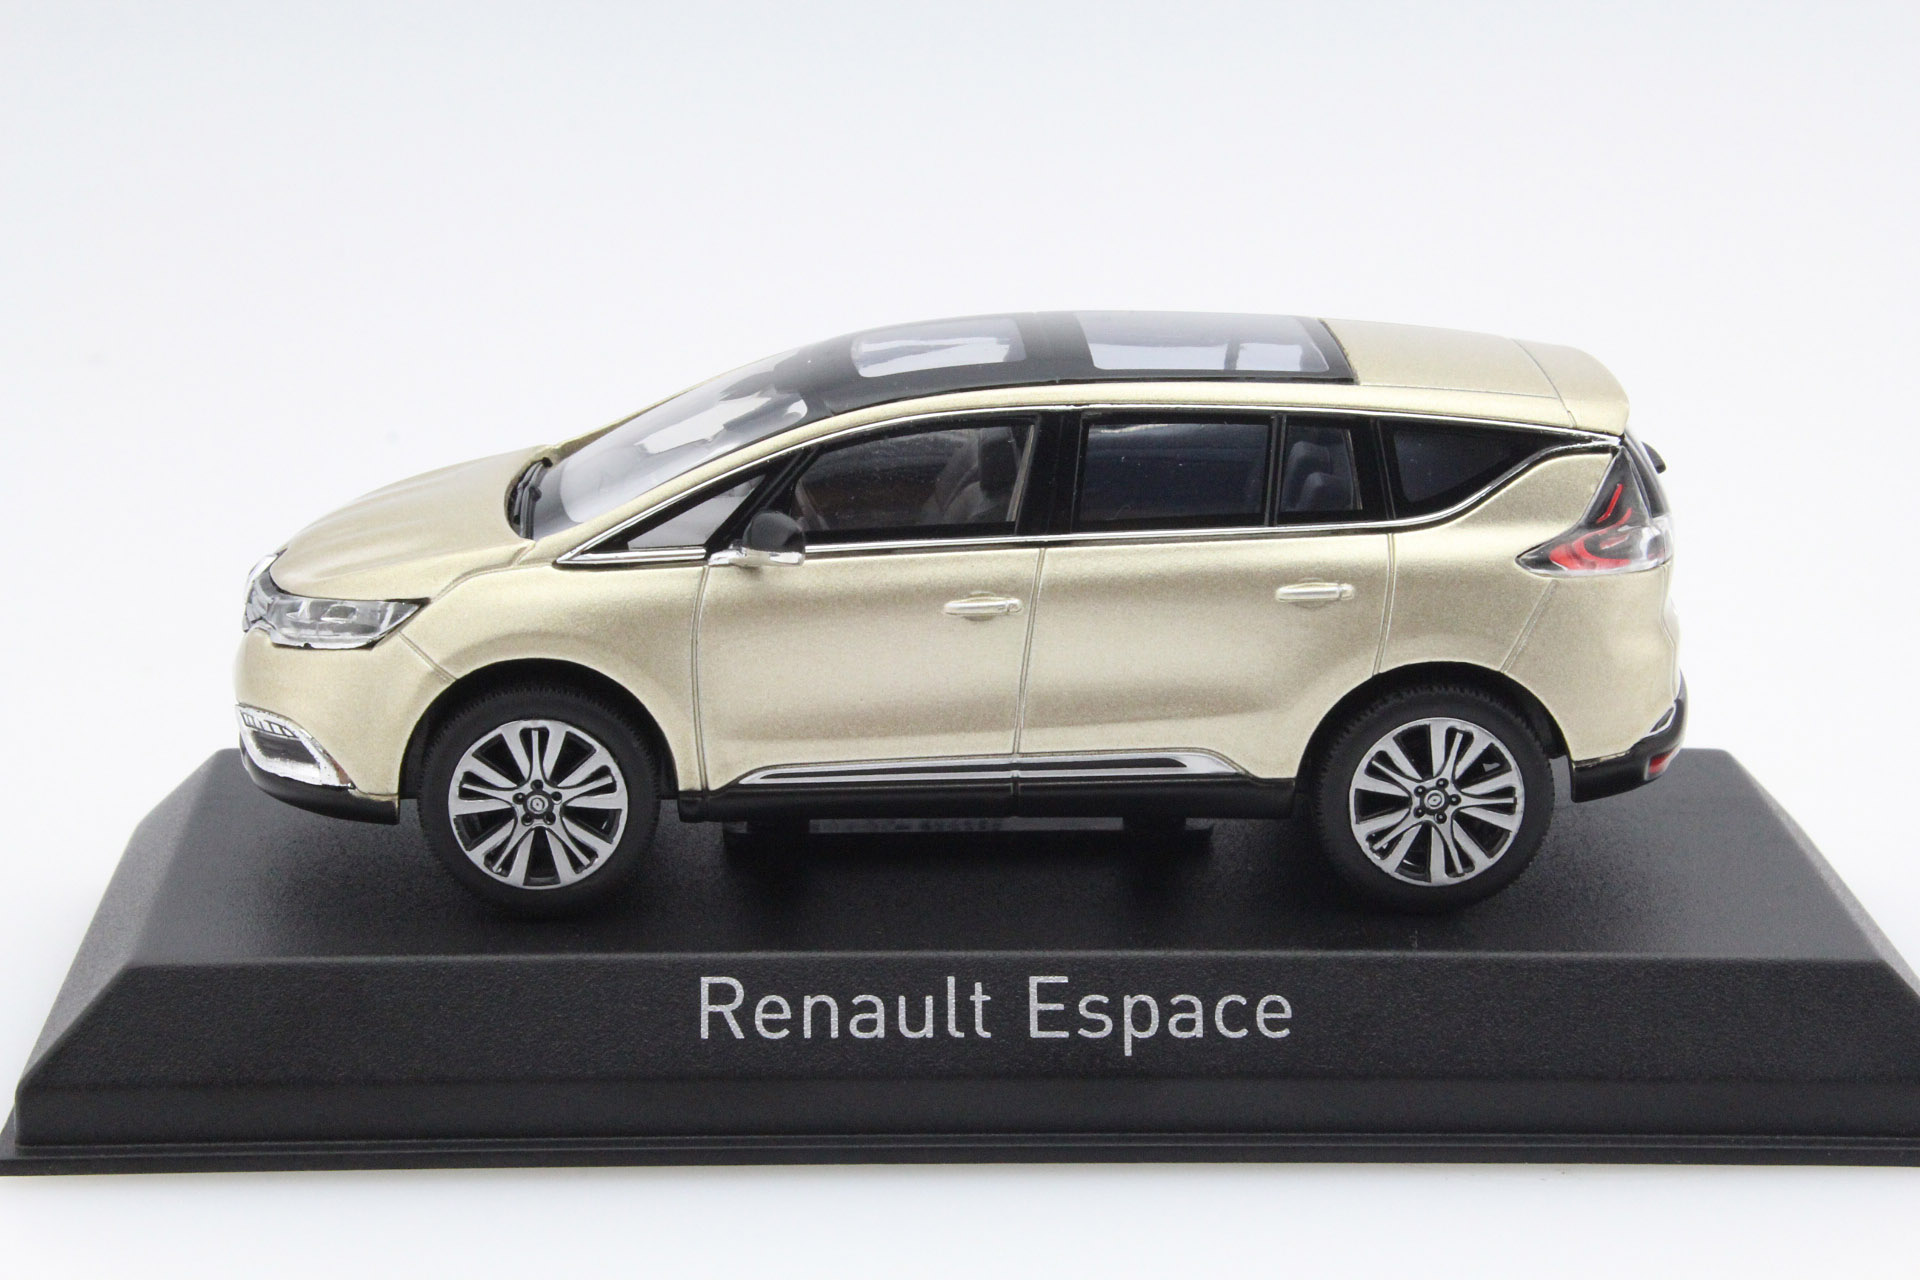 renault espace initiale paris 2015 beige dune die cast model norev 517949. Black Bedroom Furniture Sets. Home Design Ideas